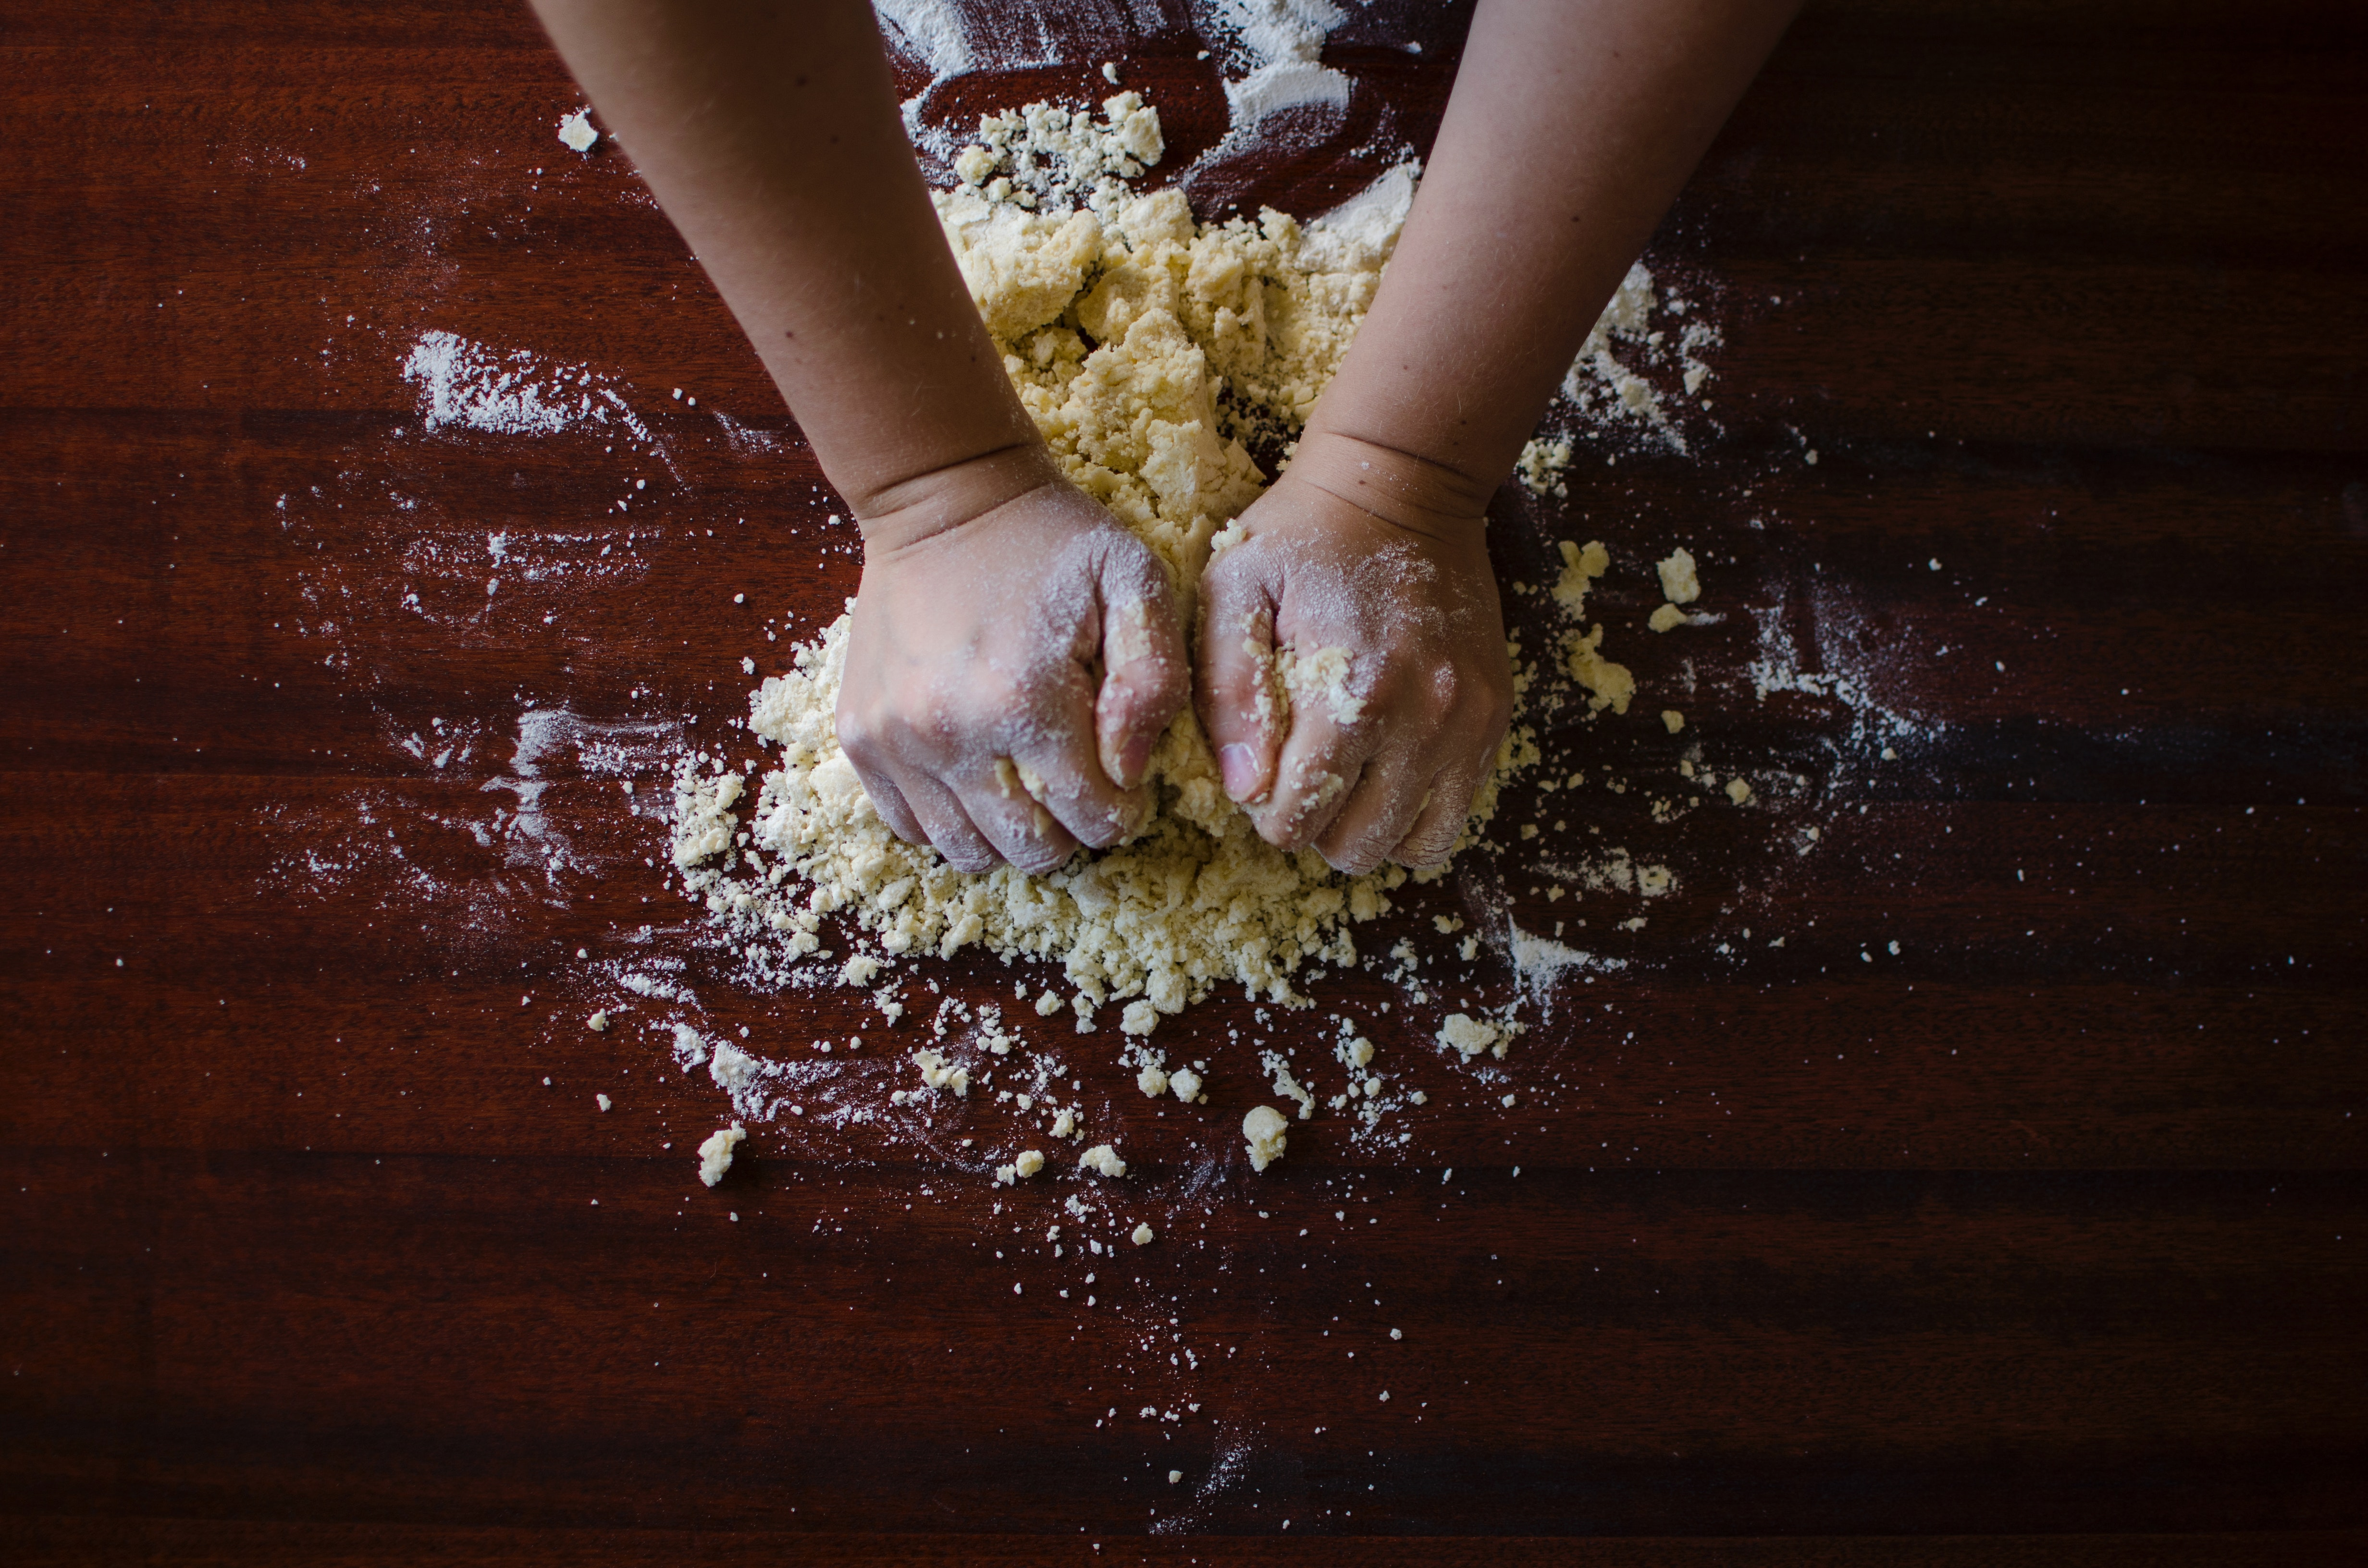 Ep 115: Giving back with Johnna the baker